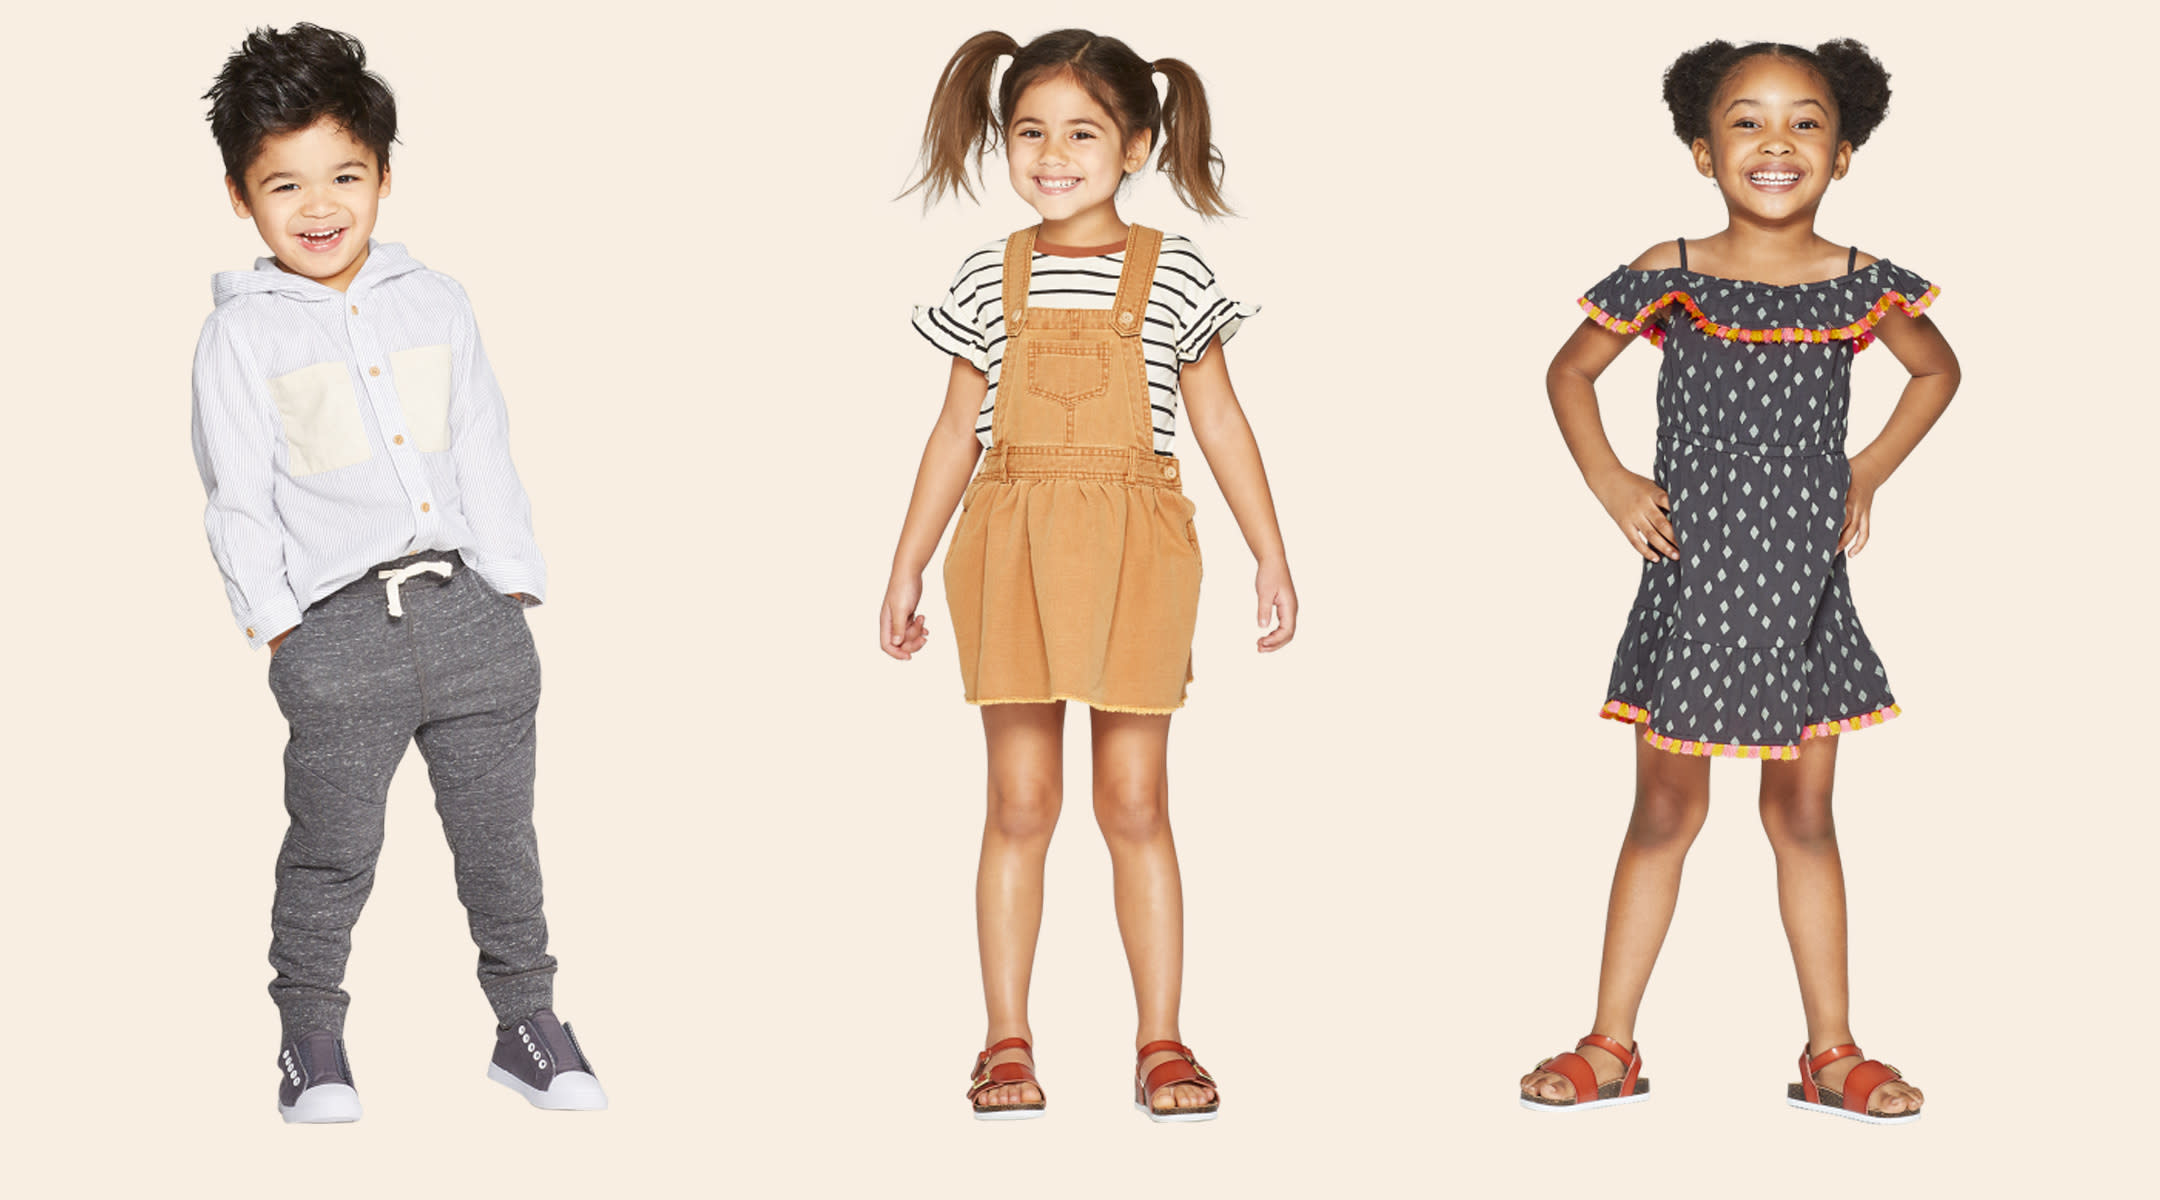 2b4024bae1dd7 Target Expands Art Class Apparel Collection to Toddler